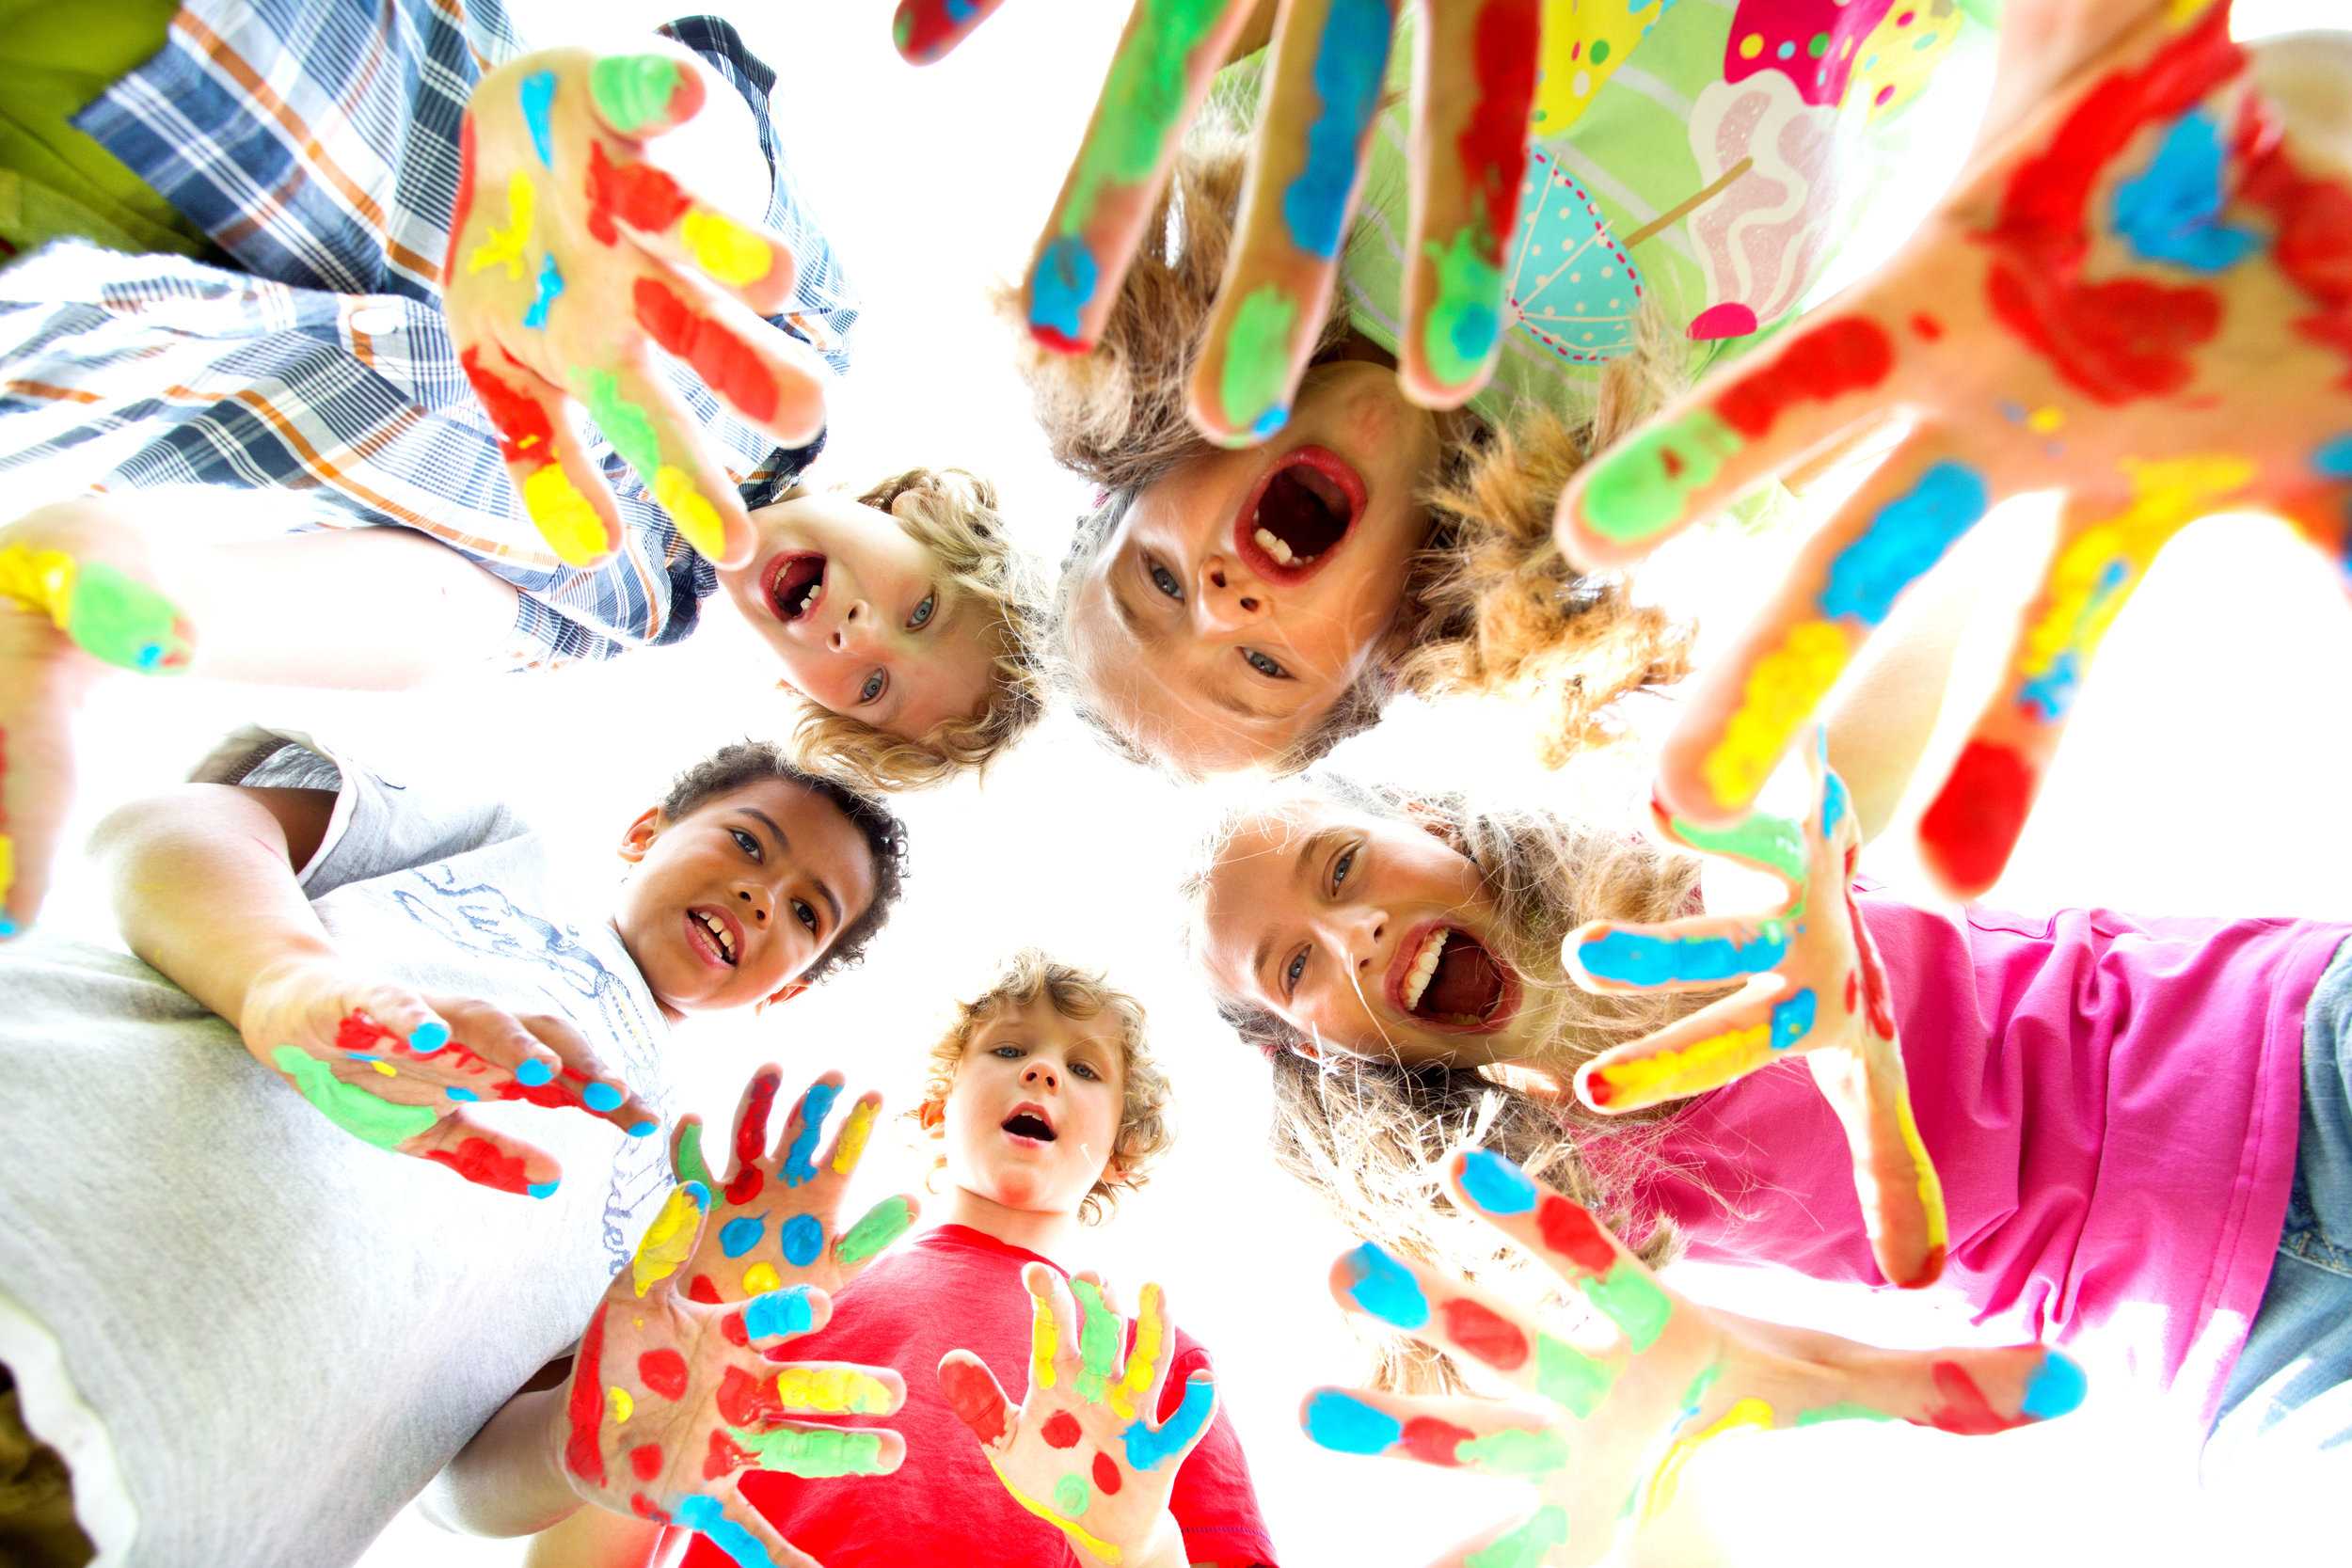 WHAT IS MOVE EARLY ED? - We are an academic preschool focused on foundational skills, movement, creativity, and fun! We believe that kids need to